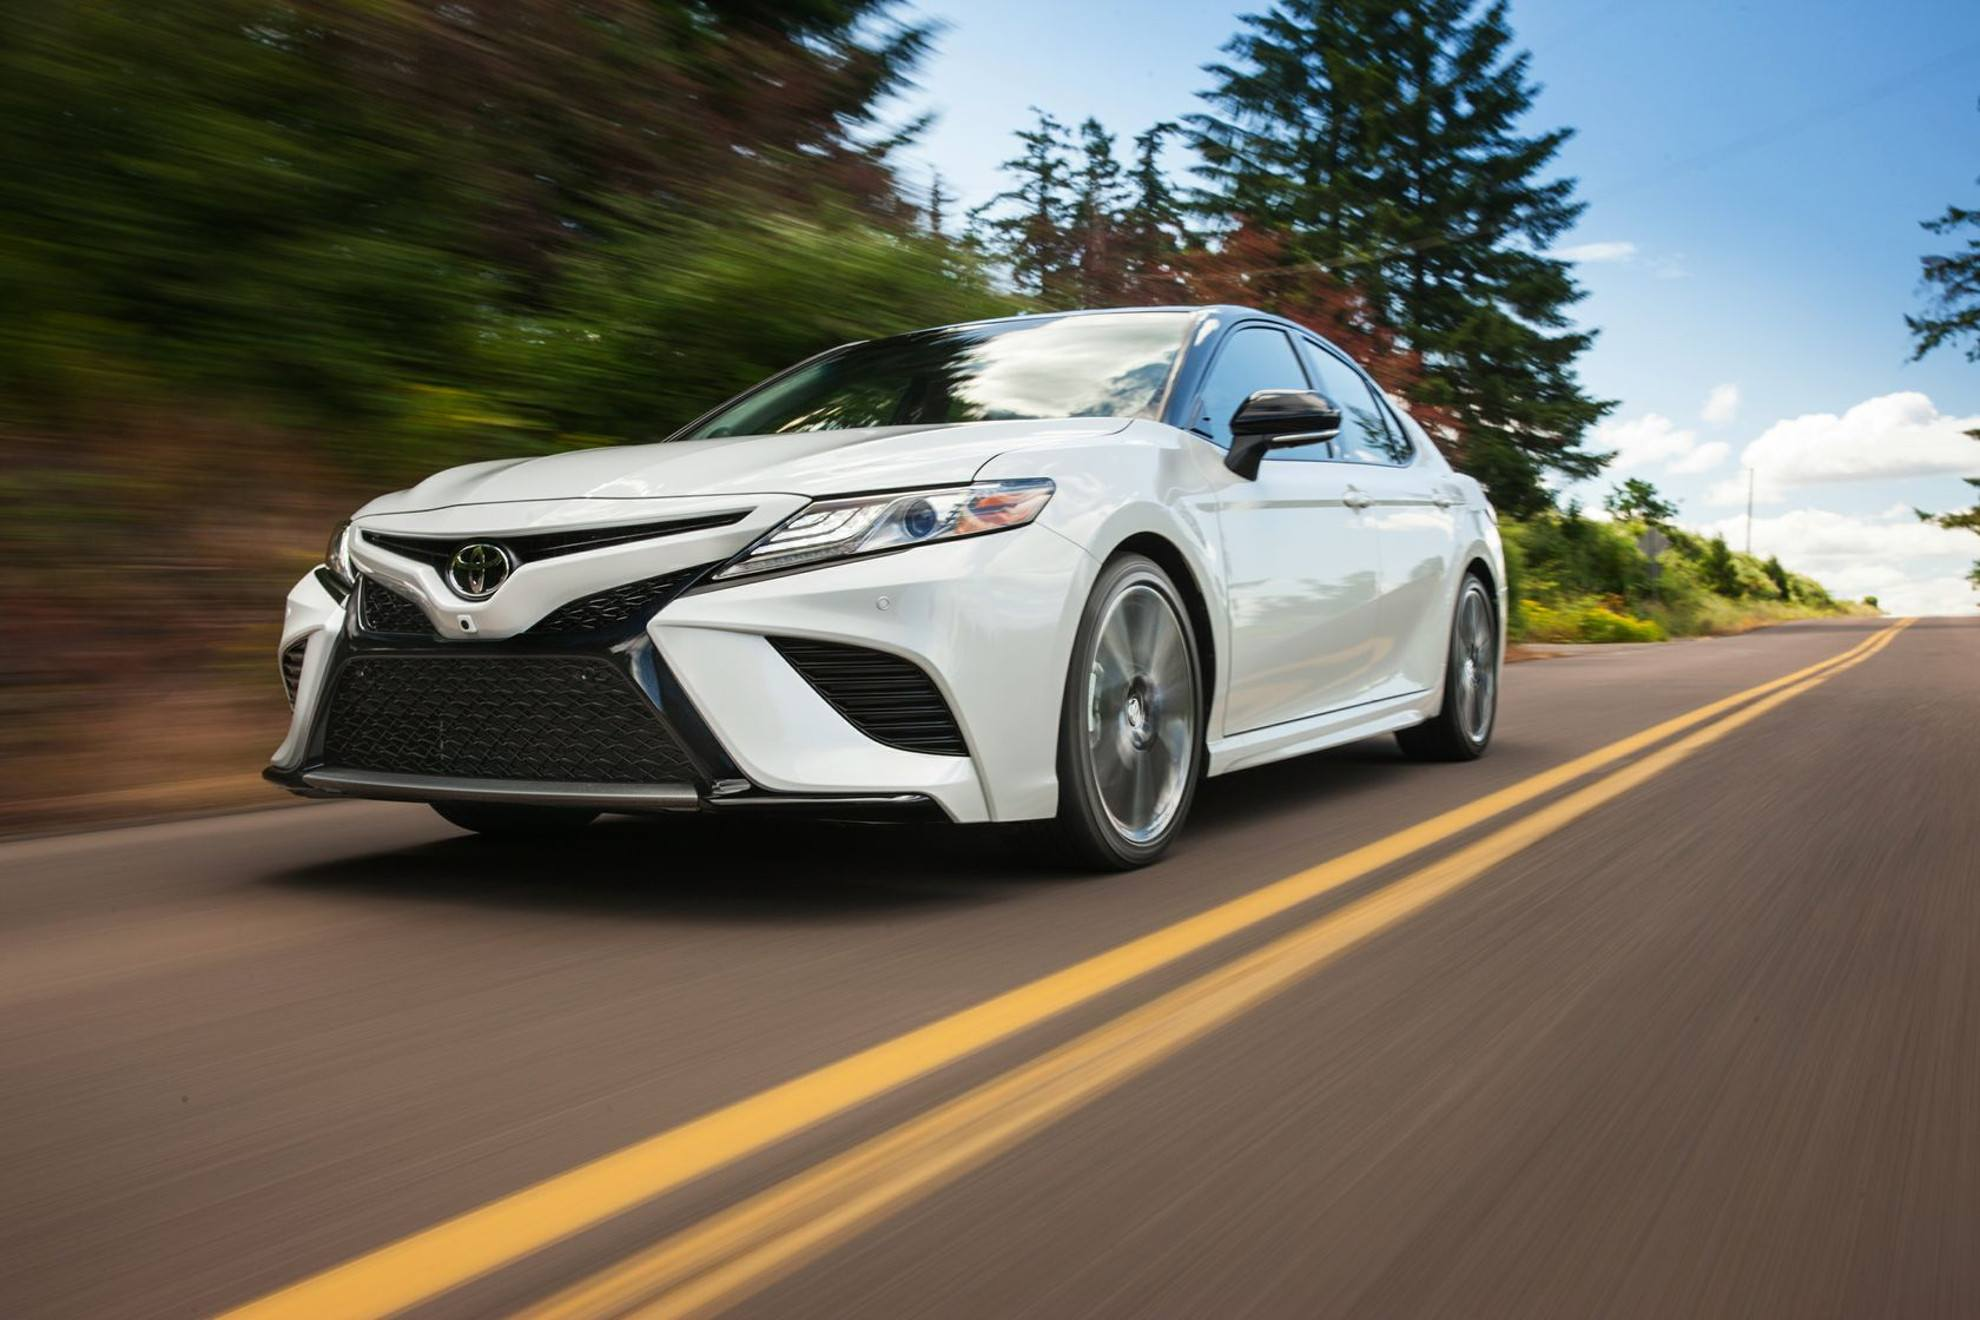 2018 Toyota Camry Front Grille at Ken Shaw Toyota in Toronto